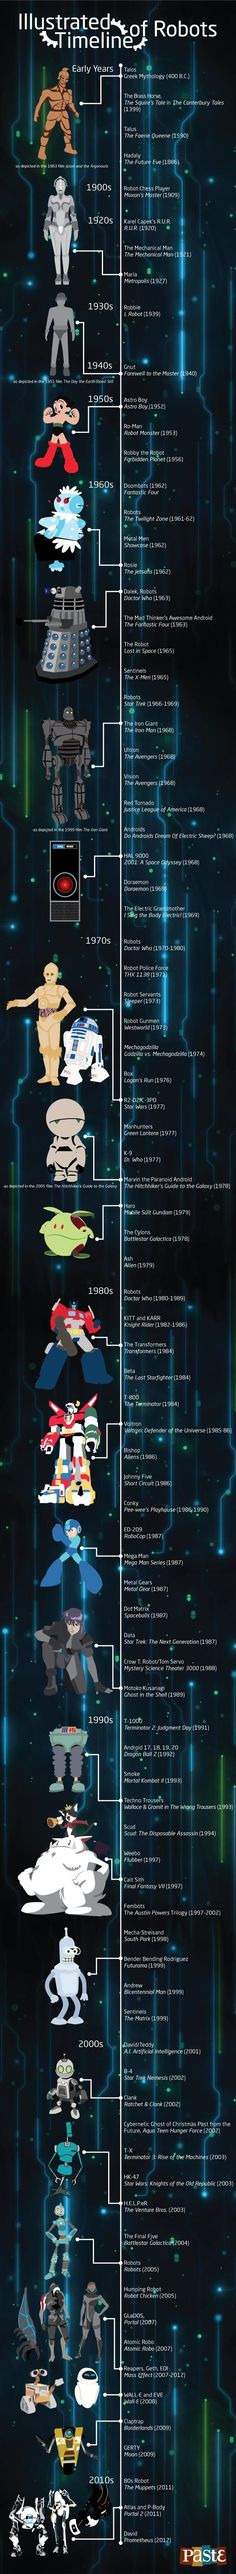 A massive timeline which shows when cinema and television robots made their first appearance.